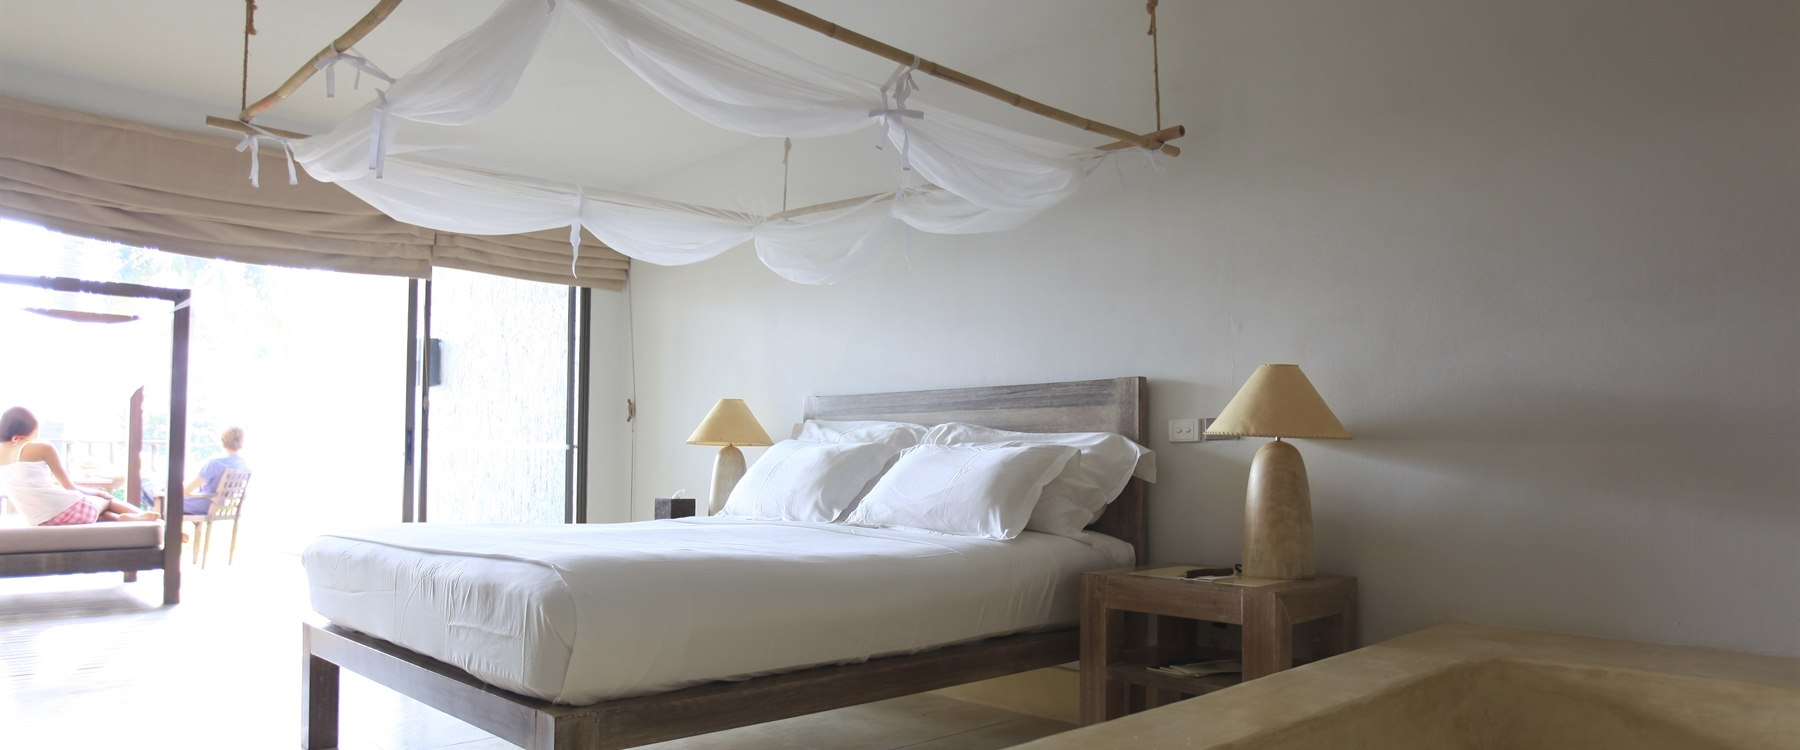 Seaview studio room at Evason Hua Hin